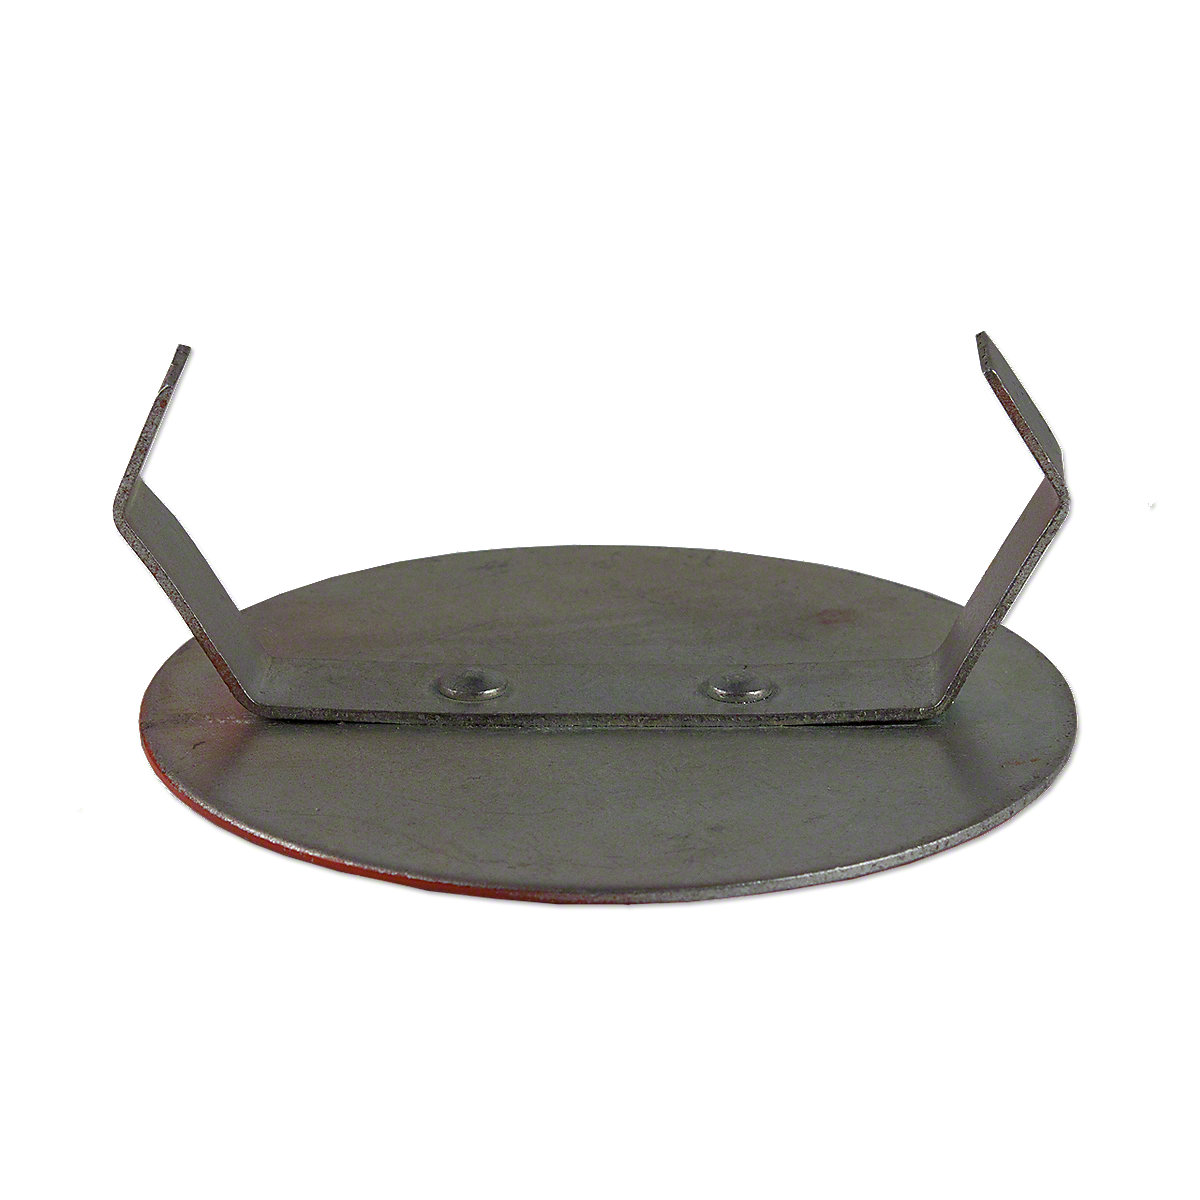 Clutch Inspection Cover Plate With Spring Steele Clips For Allis Chalmers: D14, D15.